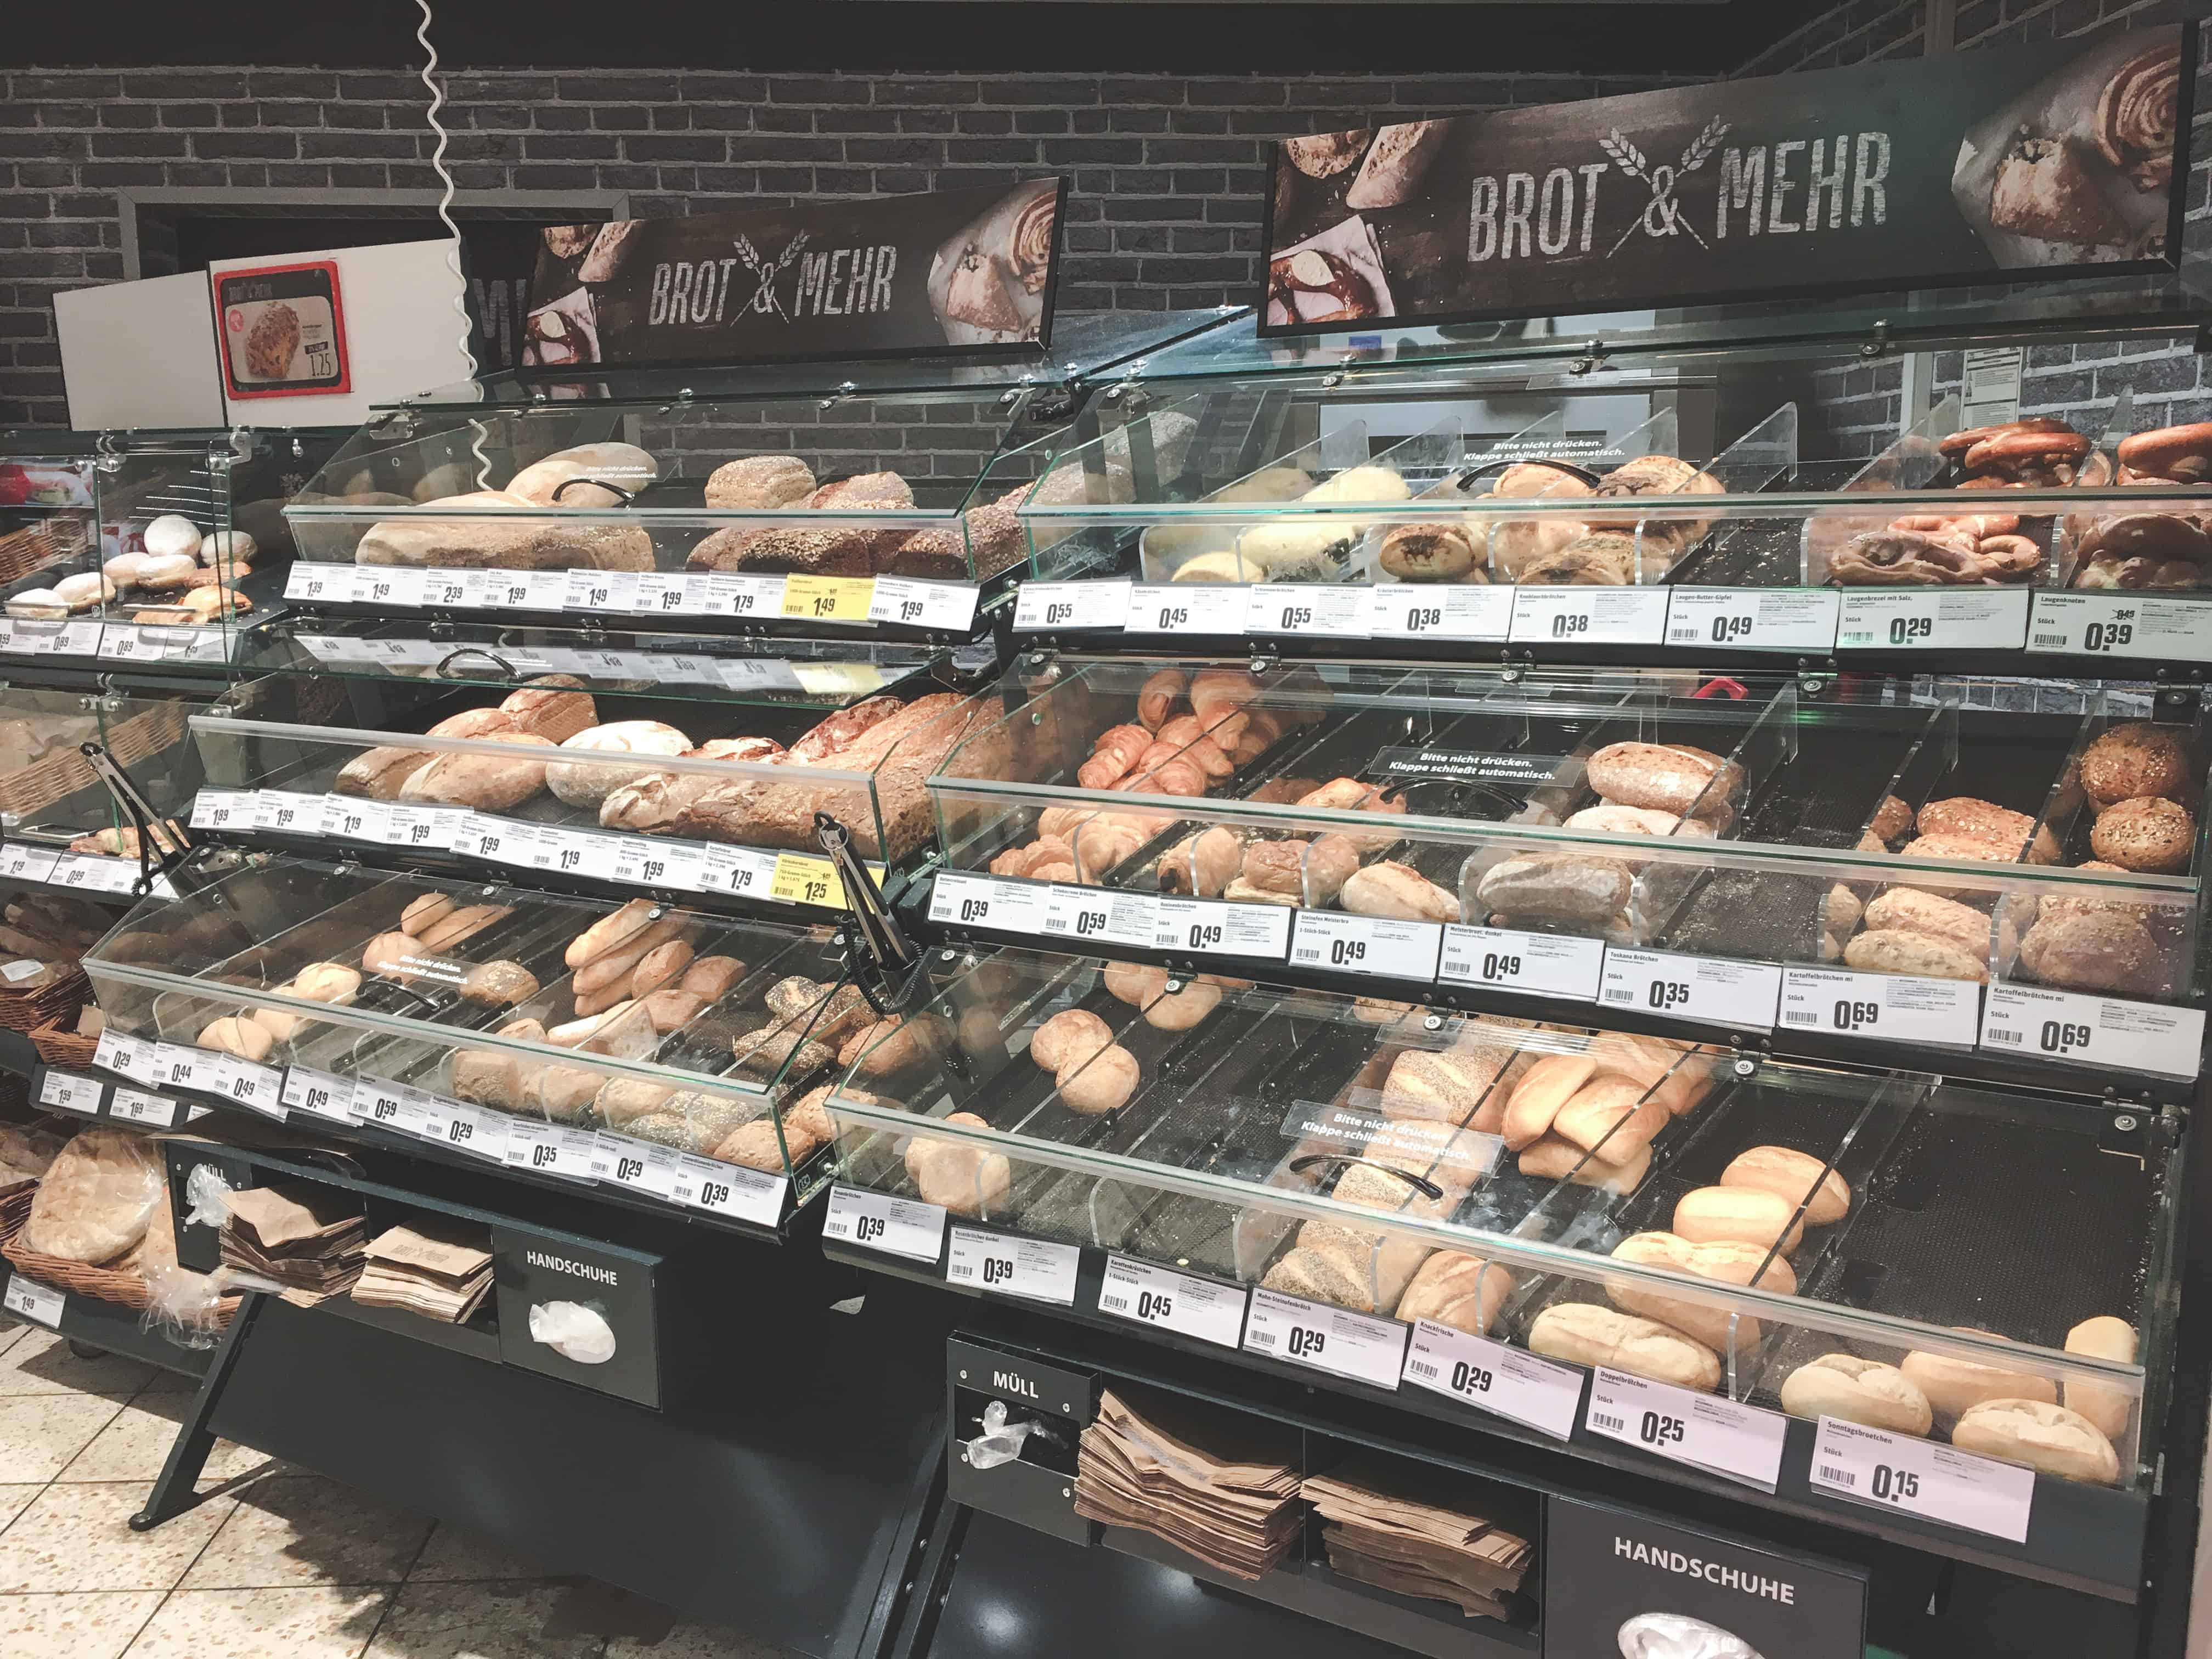 The large variety of bread in German supermarkets is one thing that surprised me about Germany!